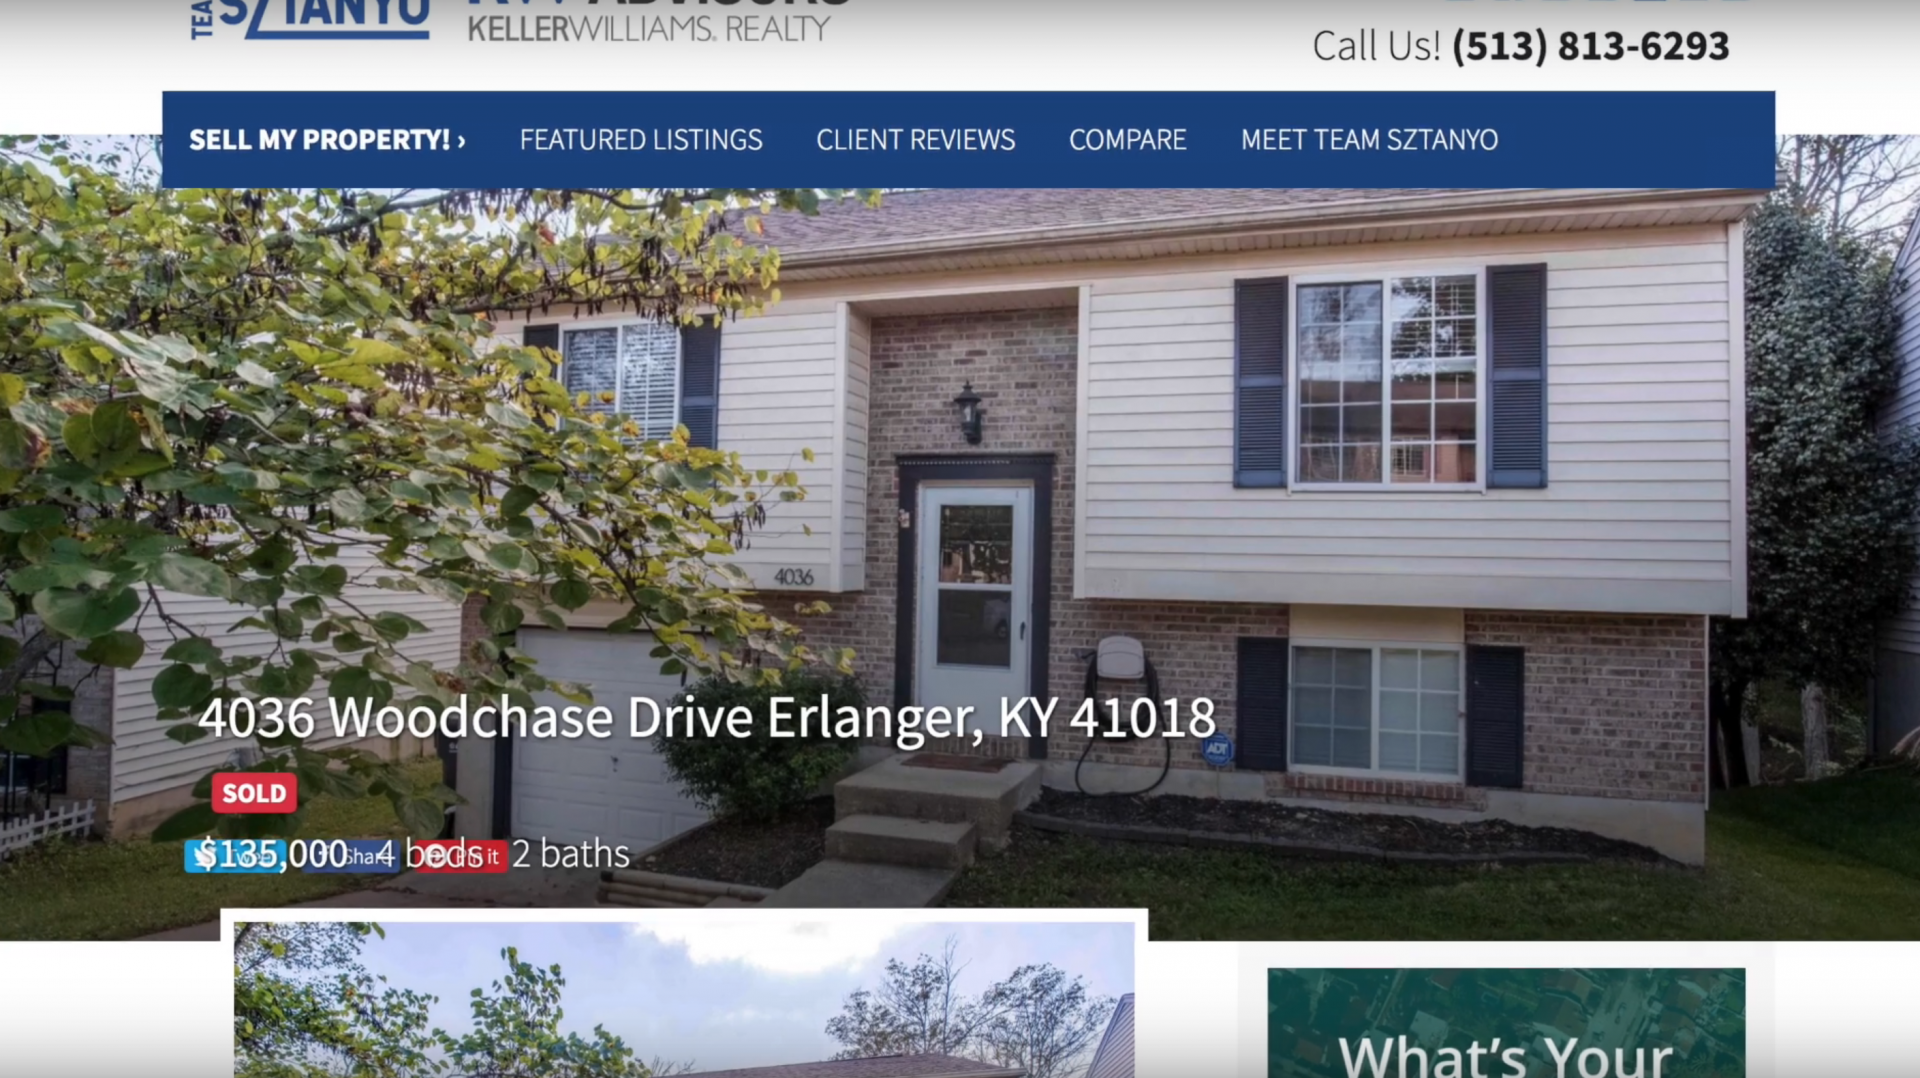 sold house in Erlanger KY when cash offer was not enough